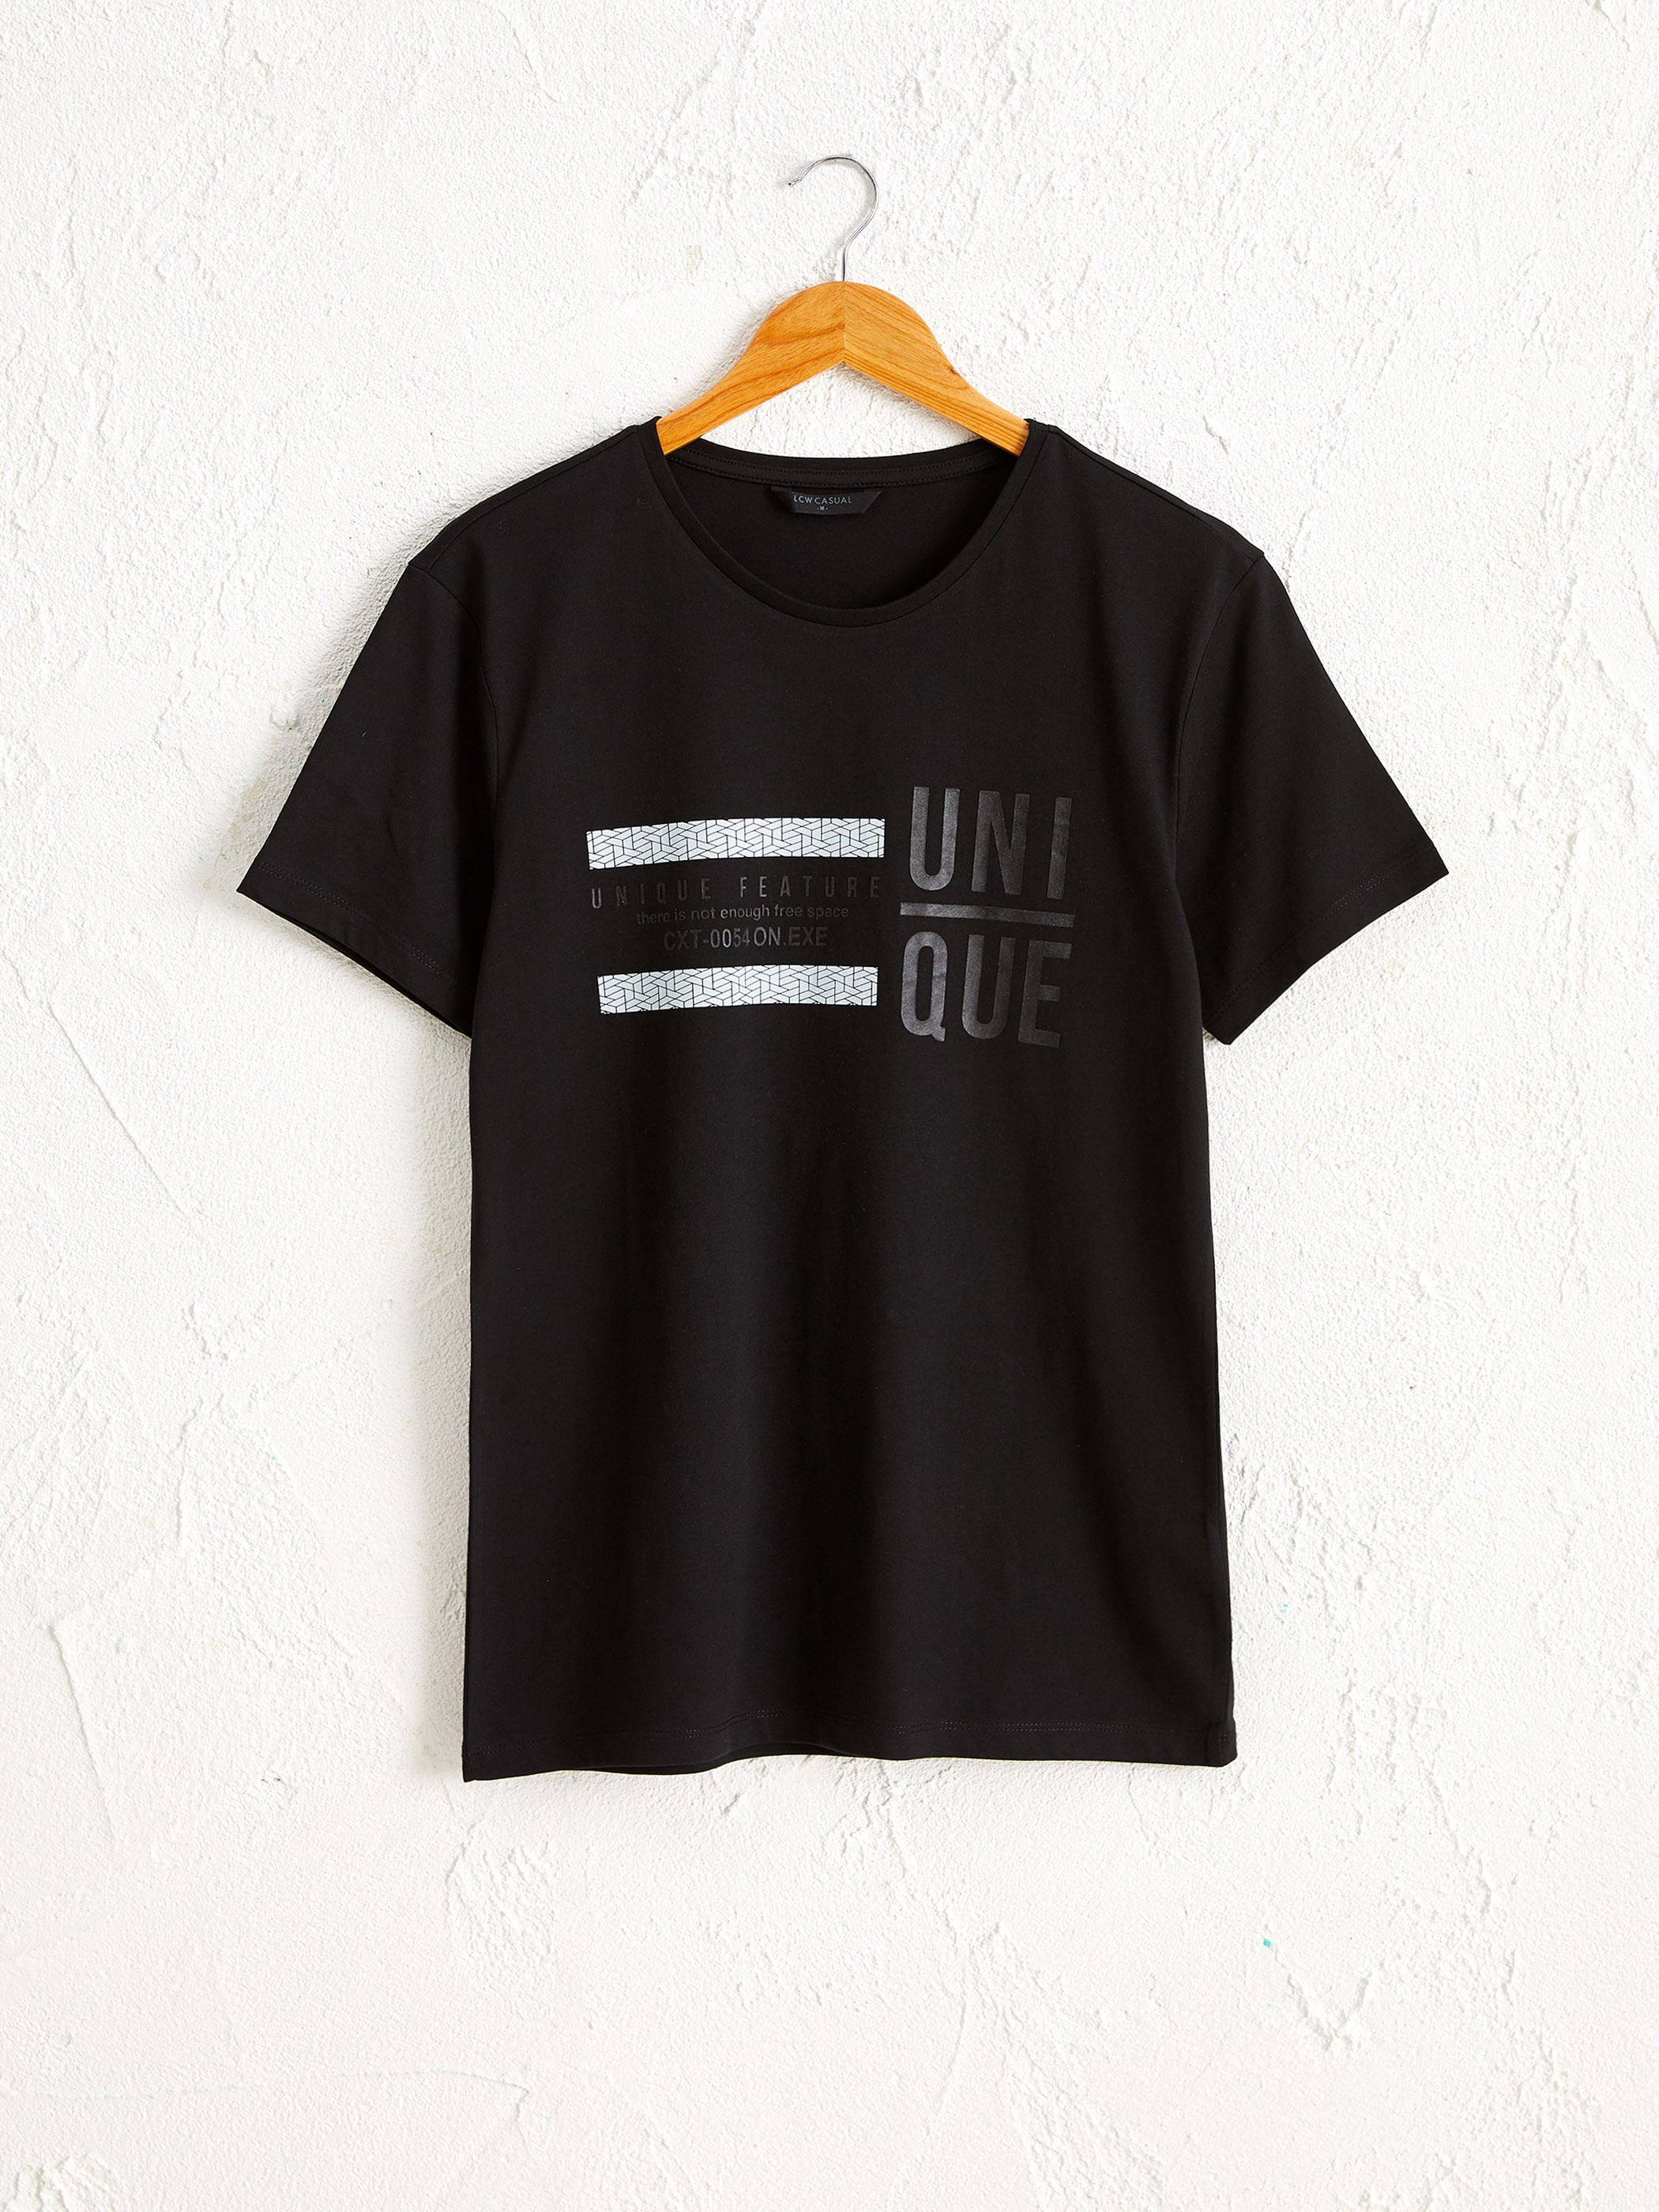 BLACK - Crew Neck Printed Combed Cotton T-Shirt - 0W4515Z8